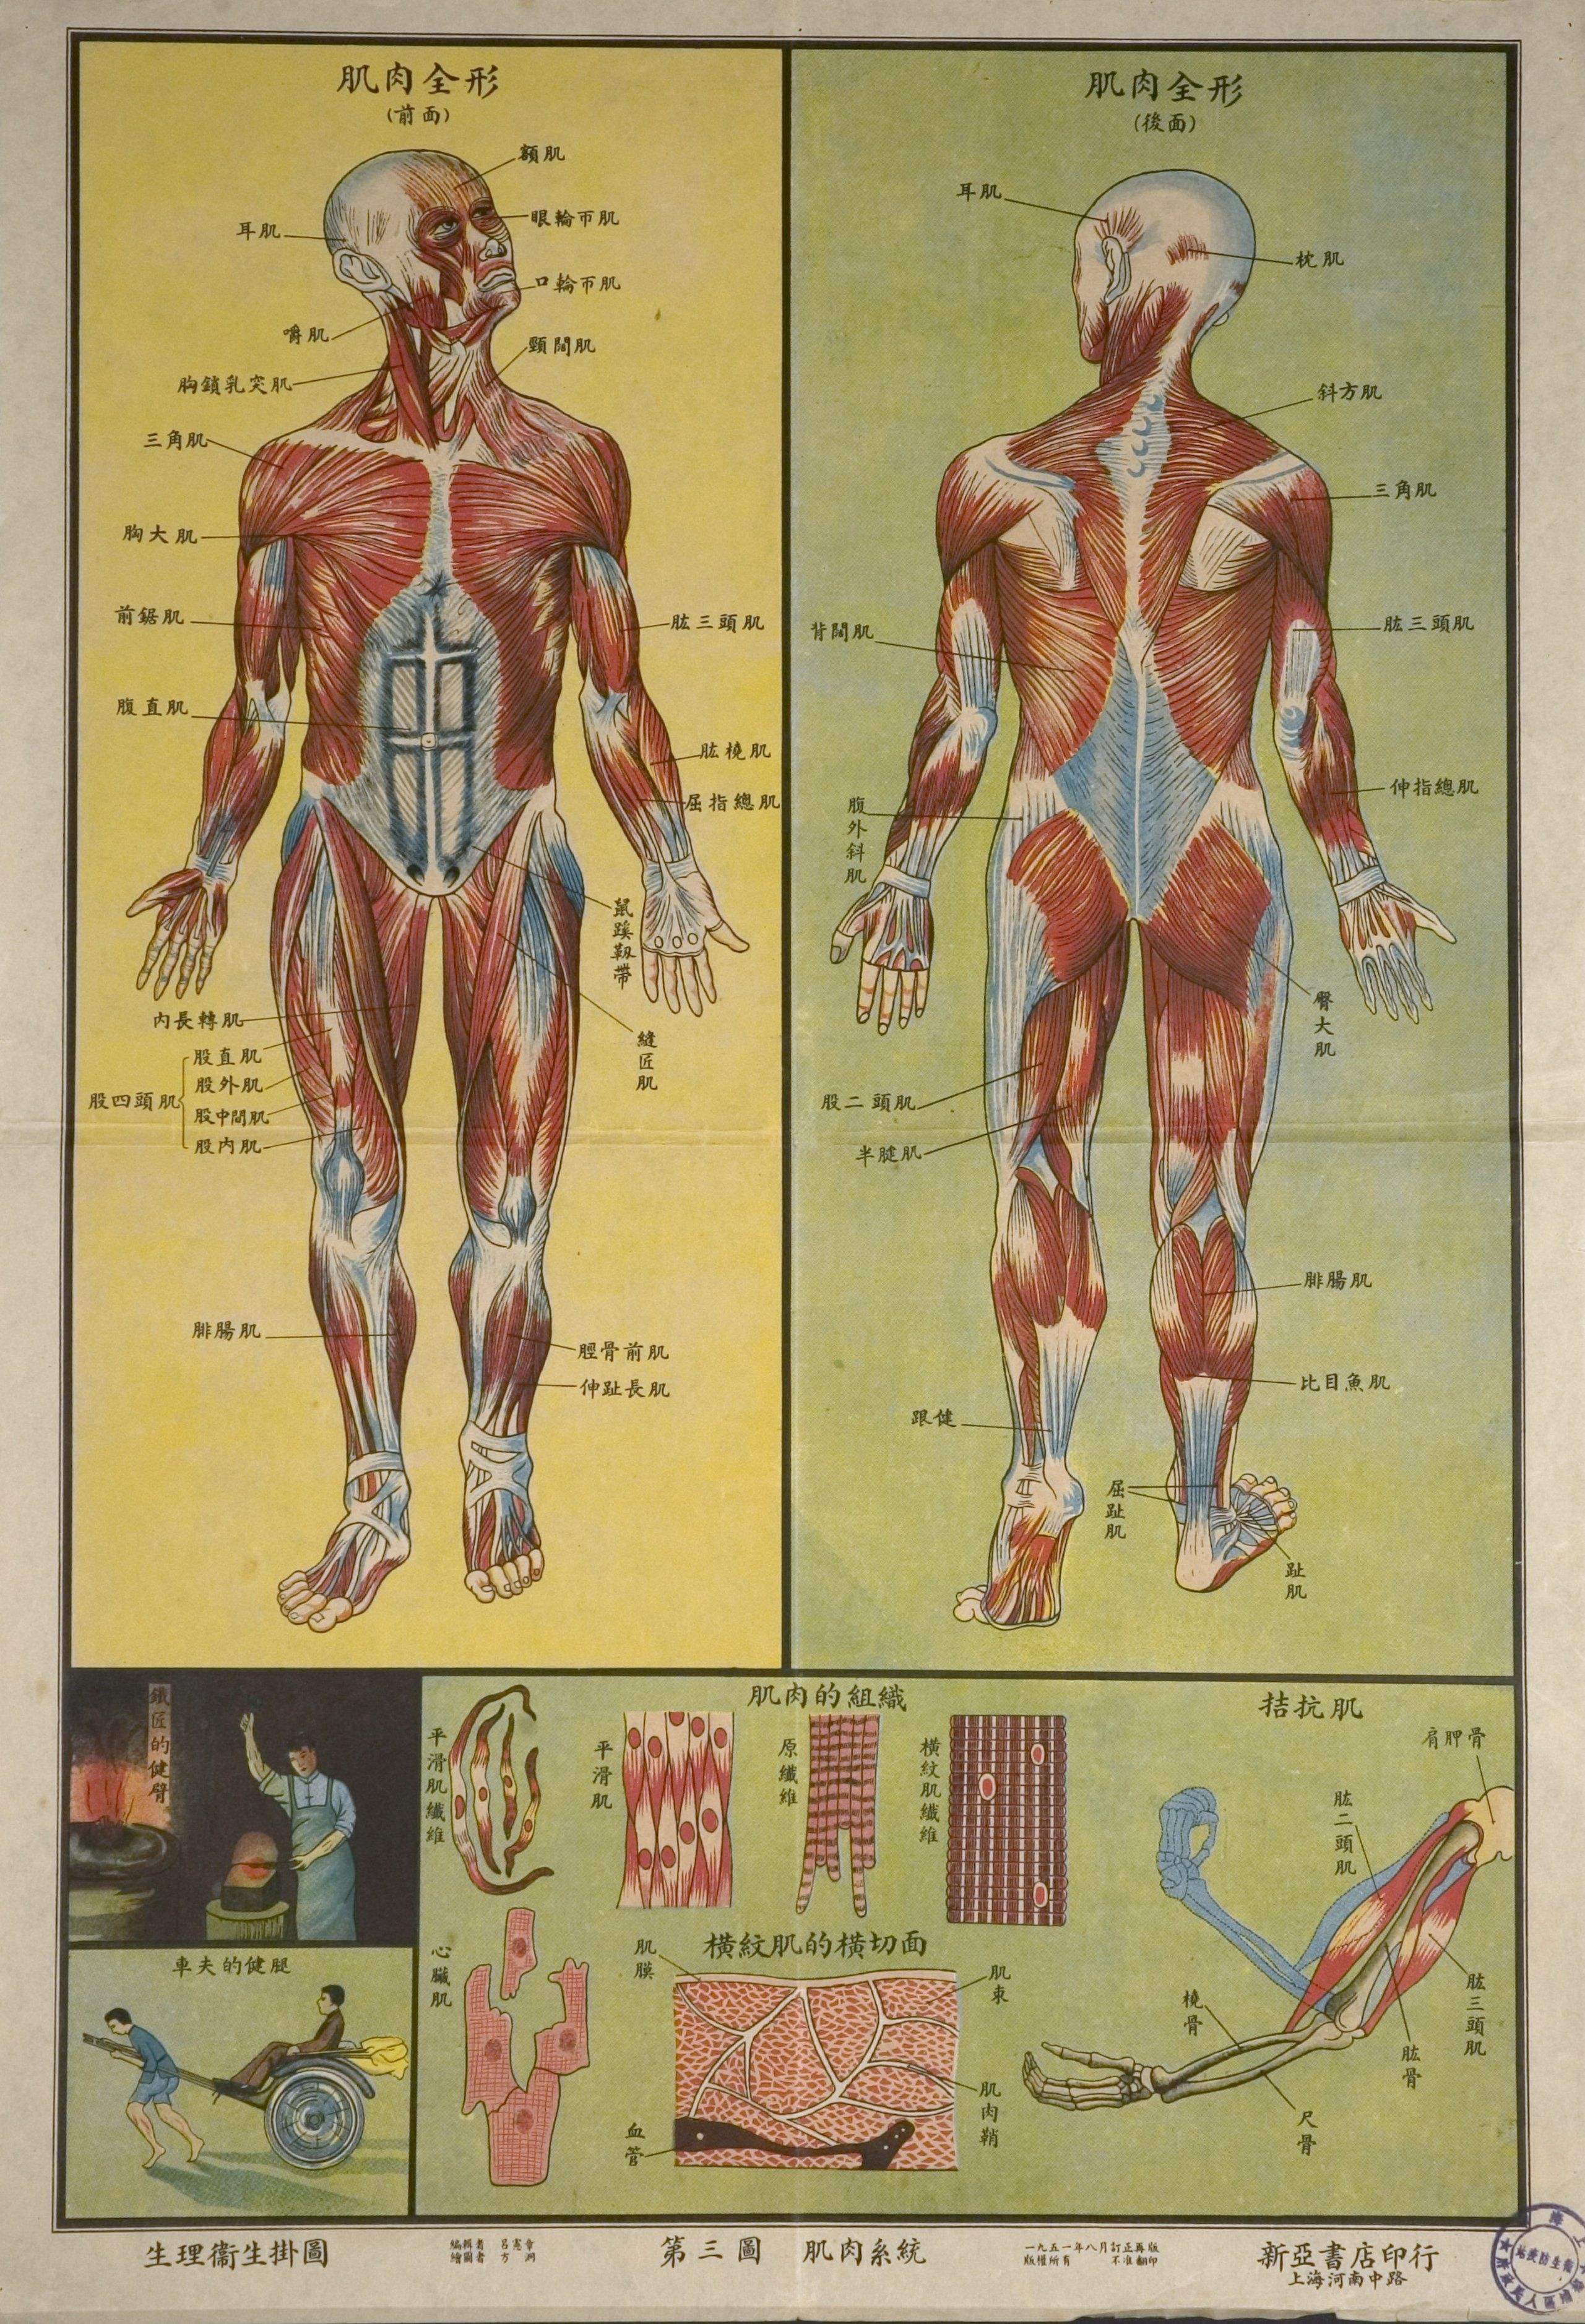 Chinese anatomy map from http://ihm.nlm.nih.gov